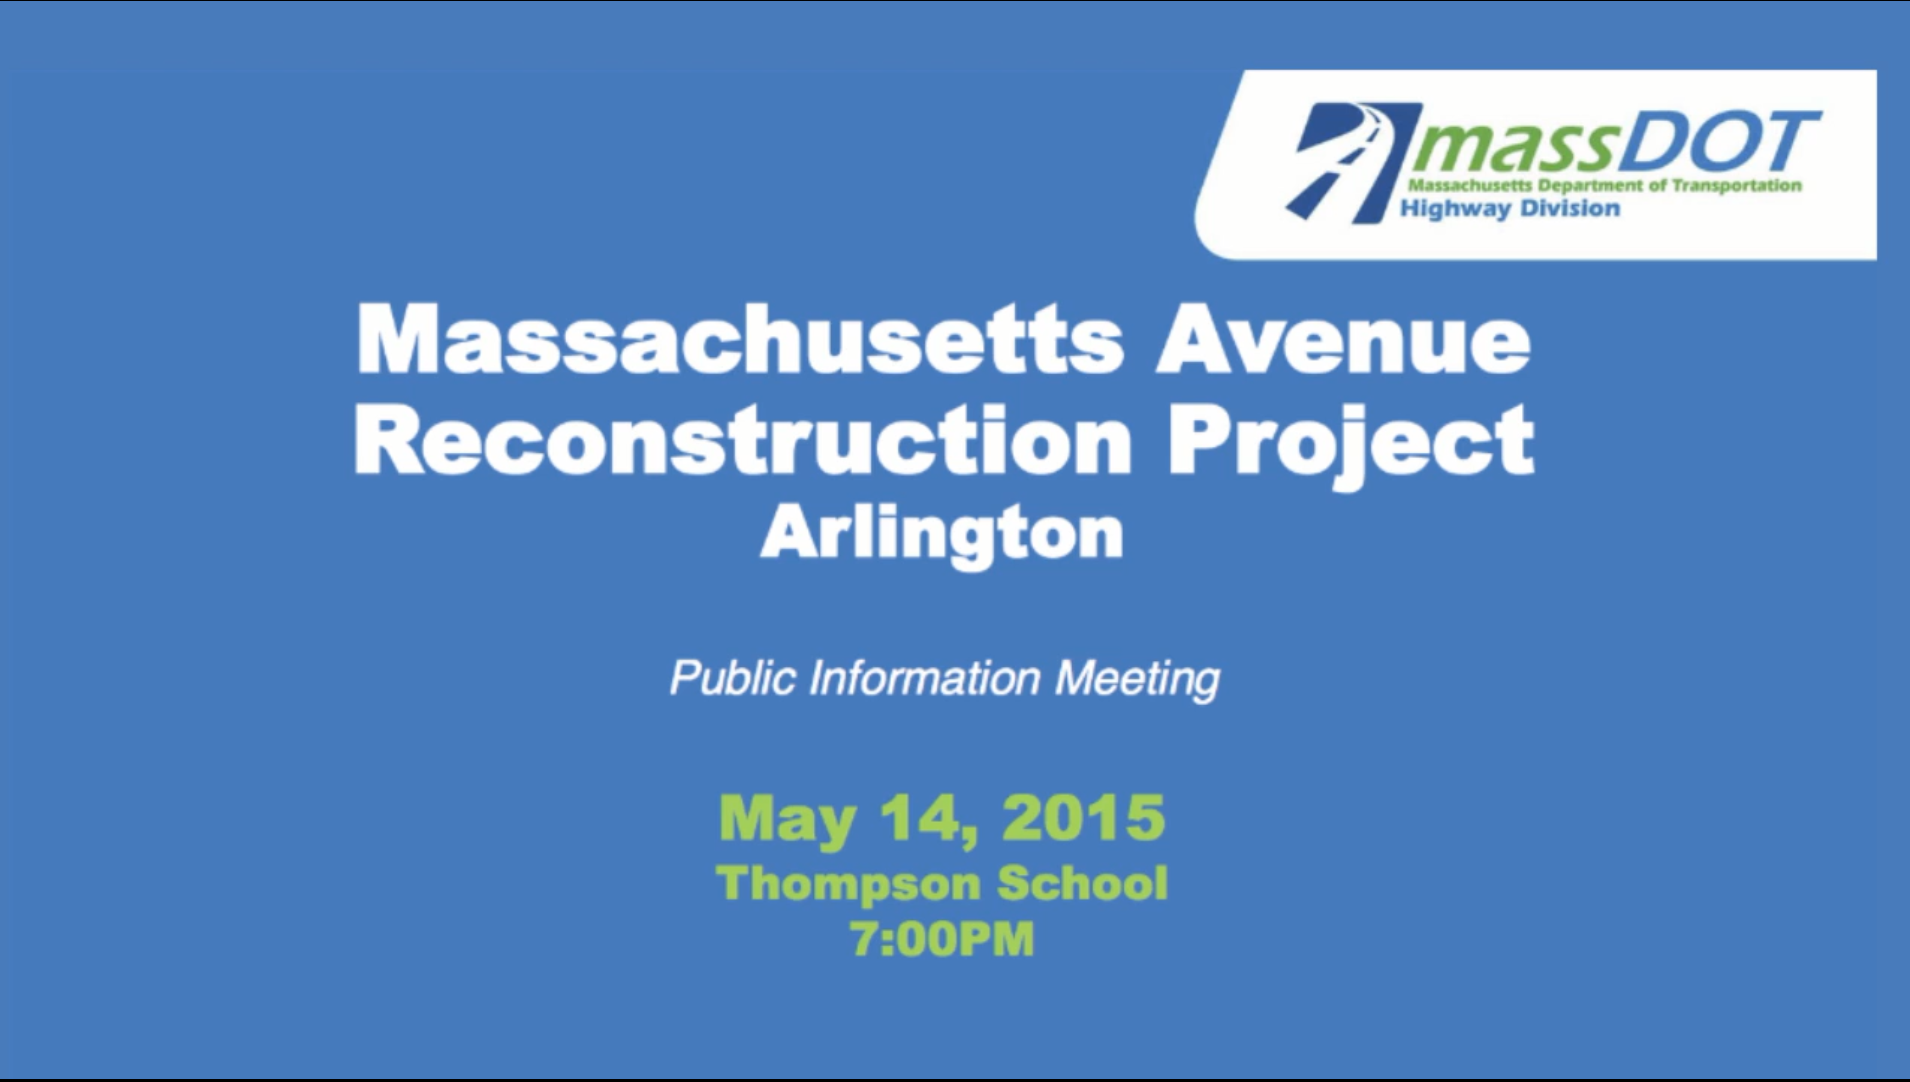 Massachusetts Avenue Reconstruction Project for Arlington: Public Information Meeting – May 14, 2015